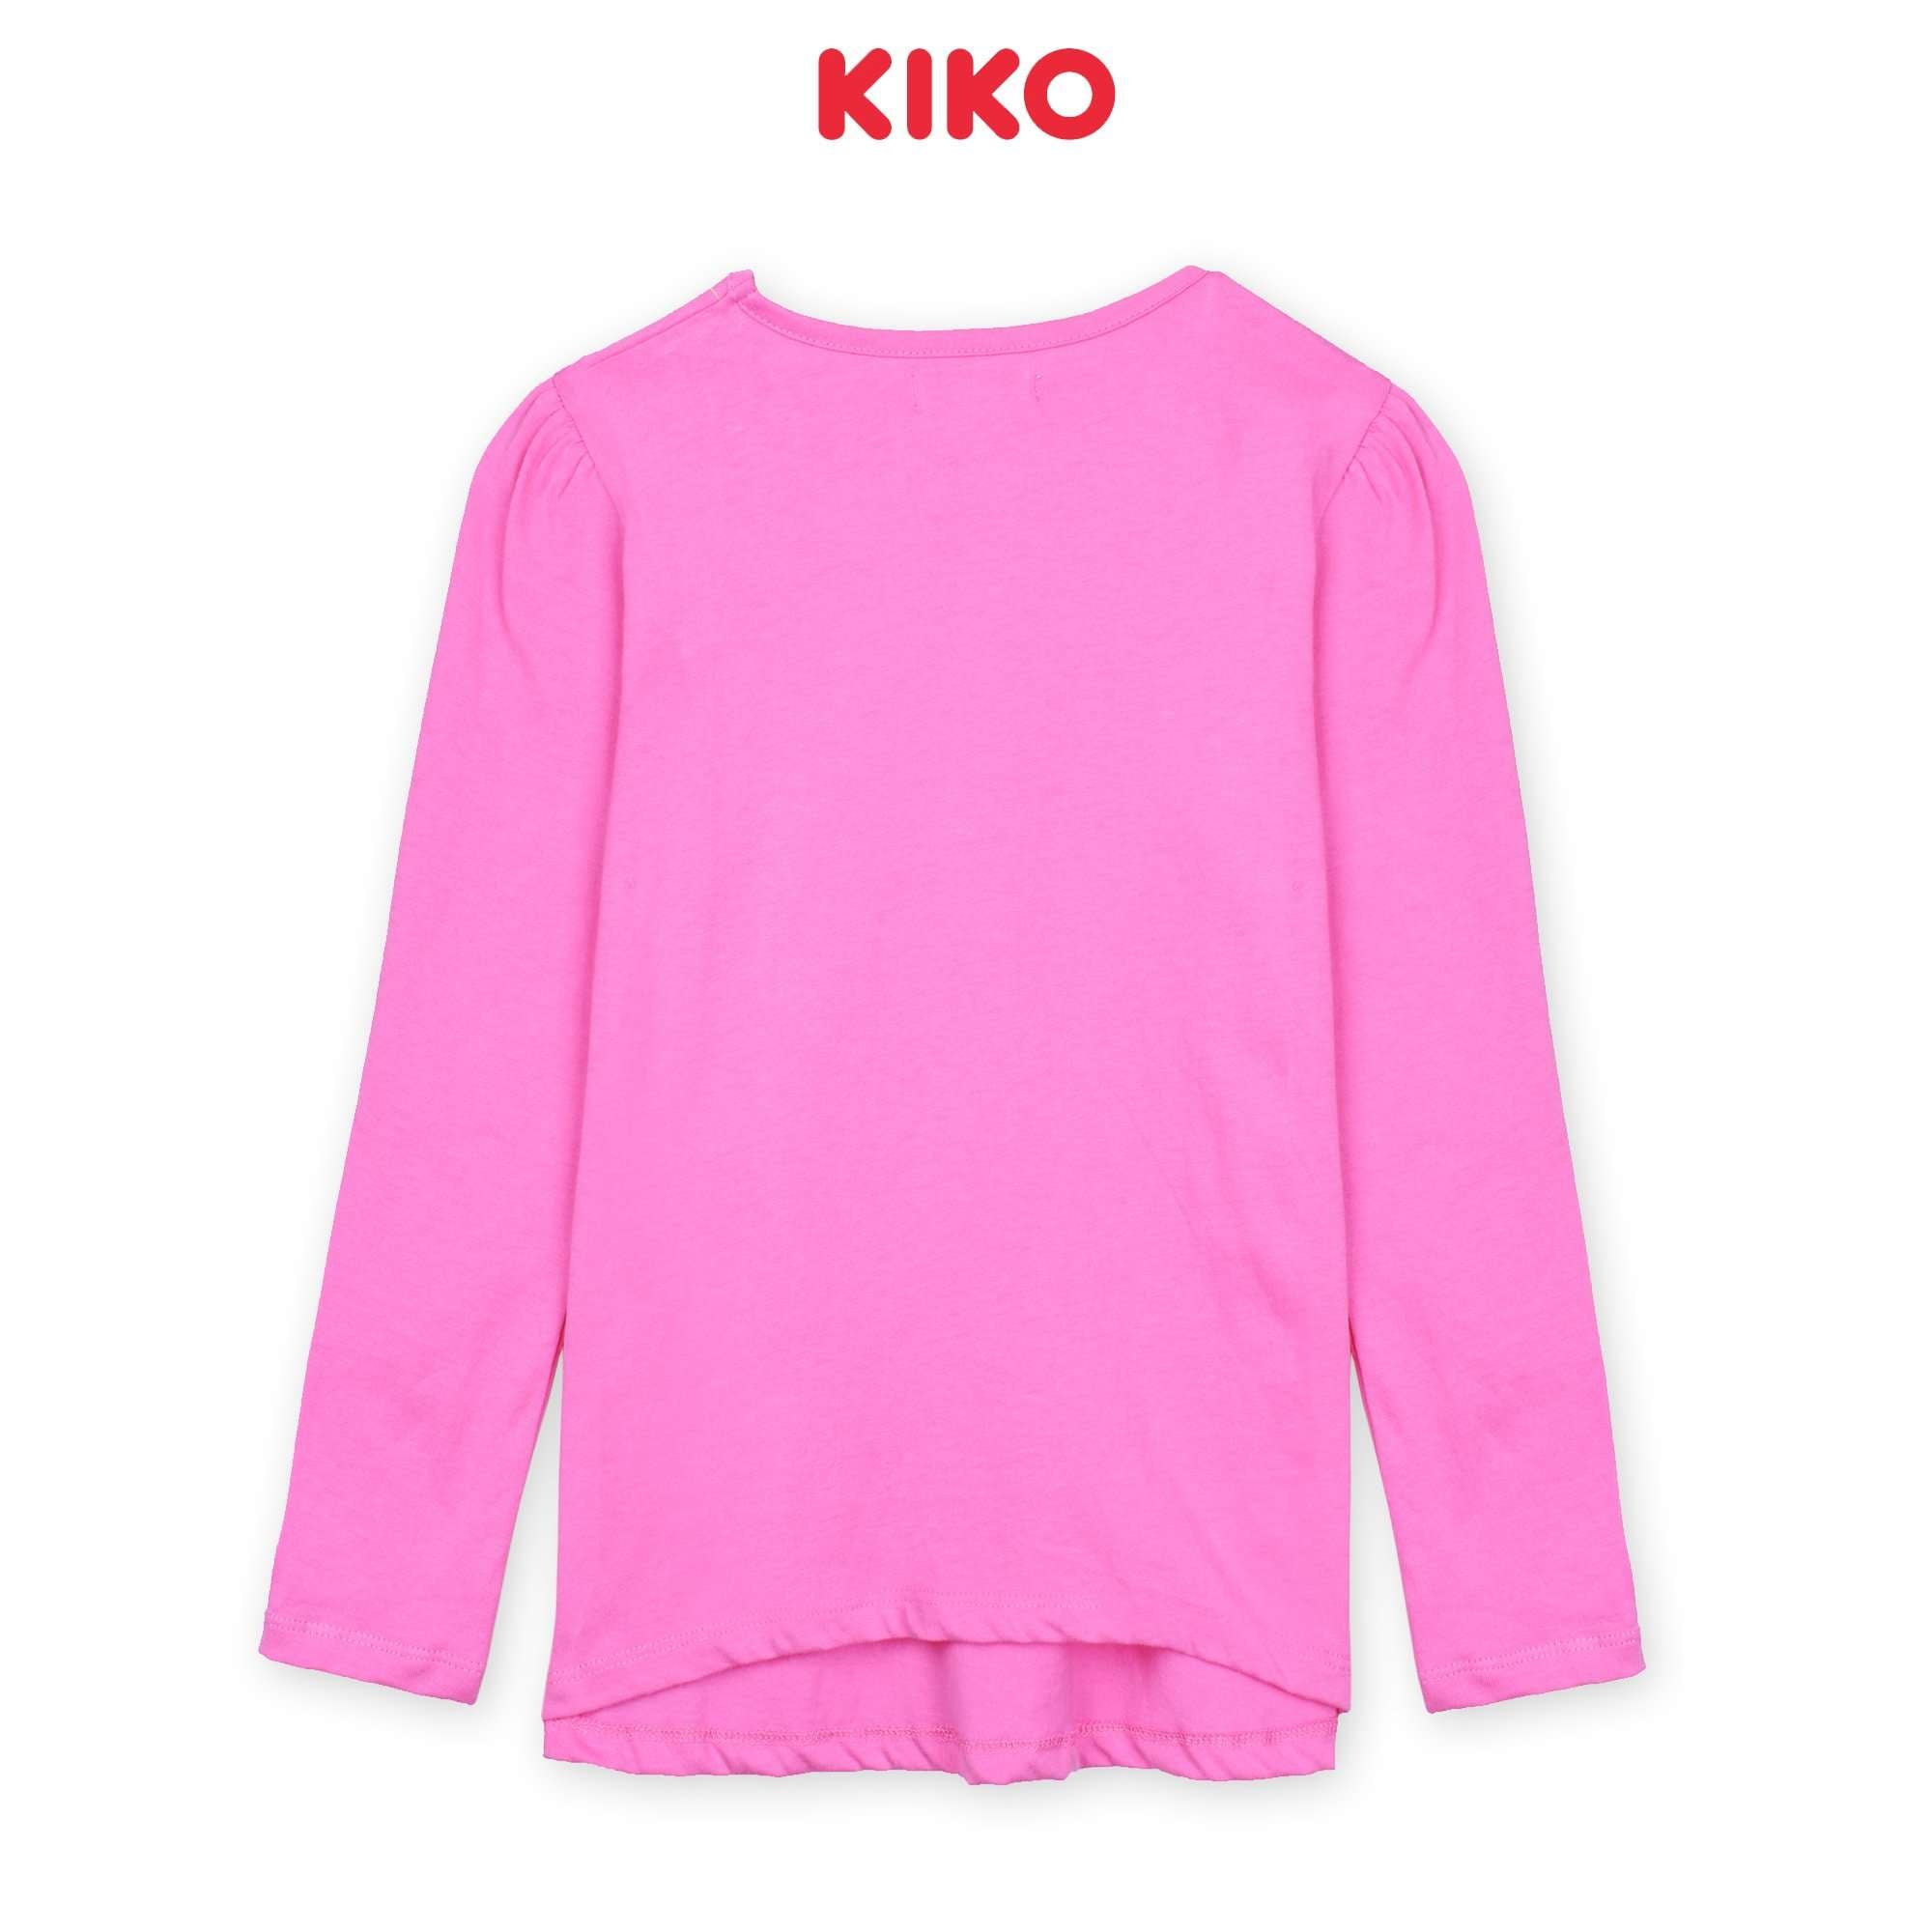 KIKO Girl Long Sleeve Tee - Light Pink K926103-1346-P1 : Buy KIKO online at CMG.MY